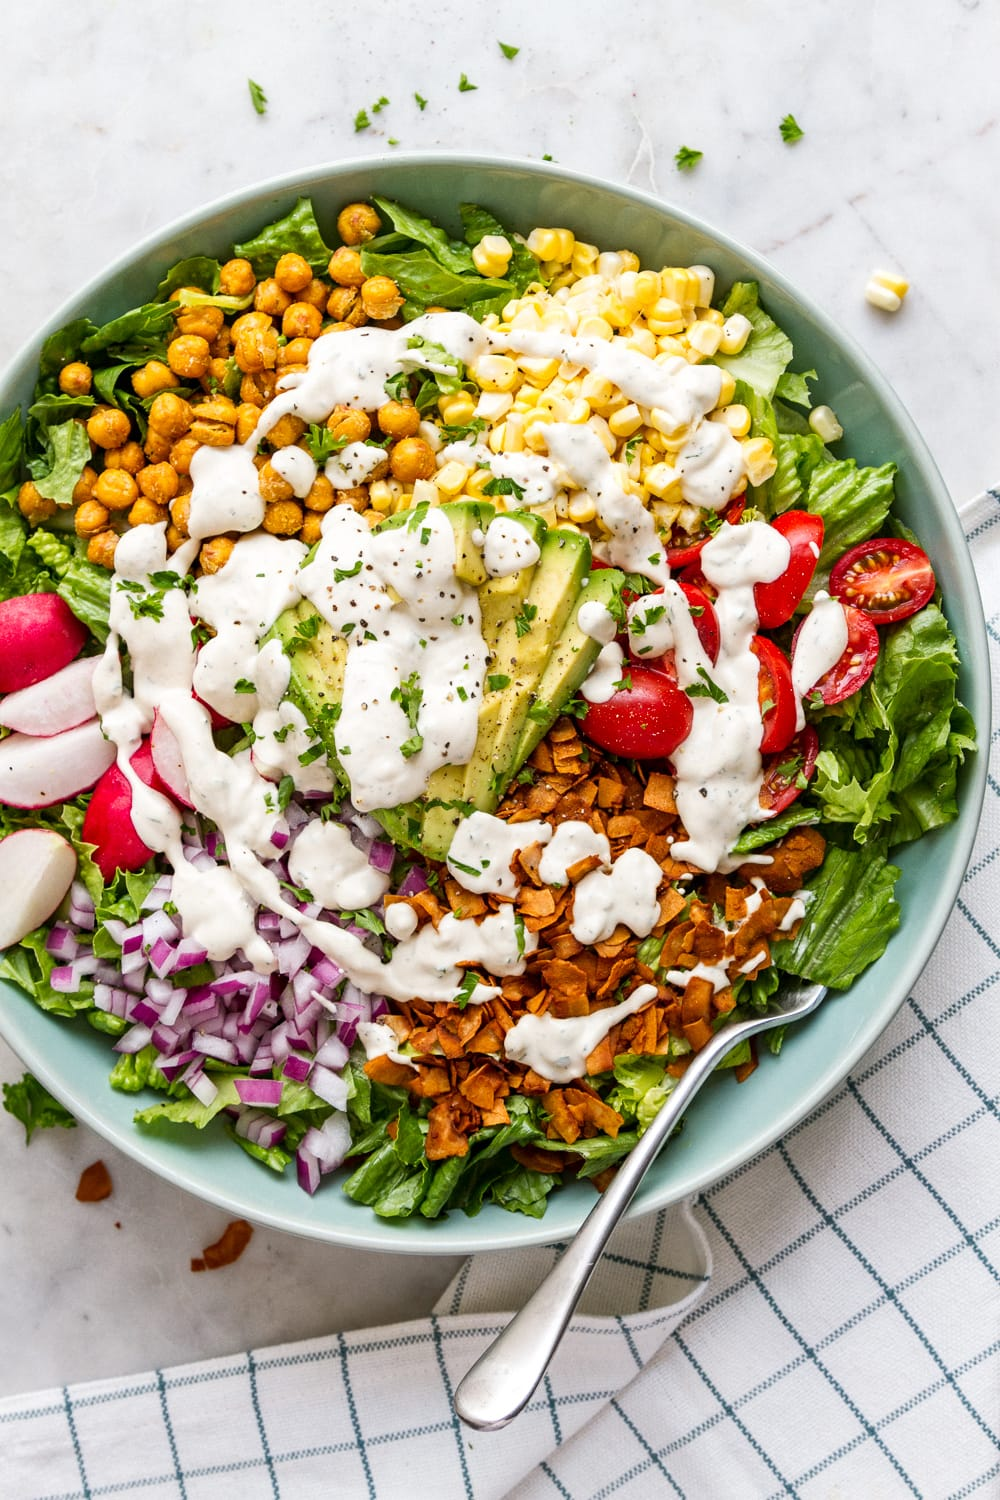 top down view of bowl filled with vegan cobb salad drizzled with vegan ranch dressing.